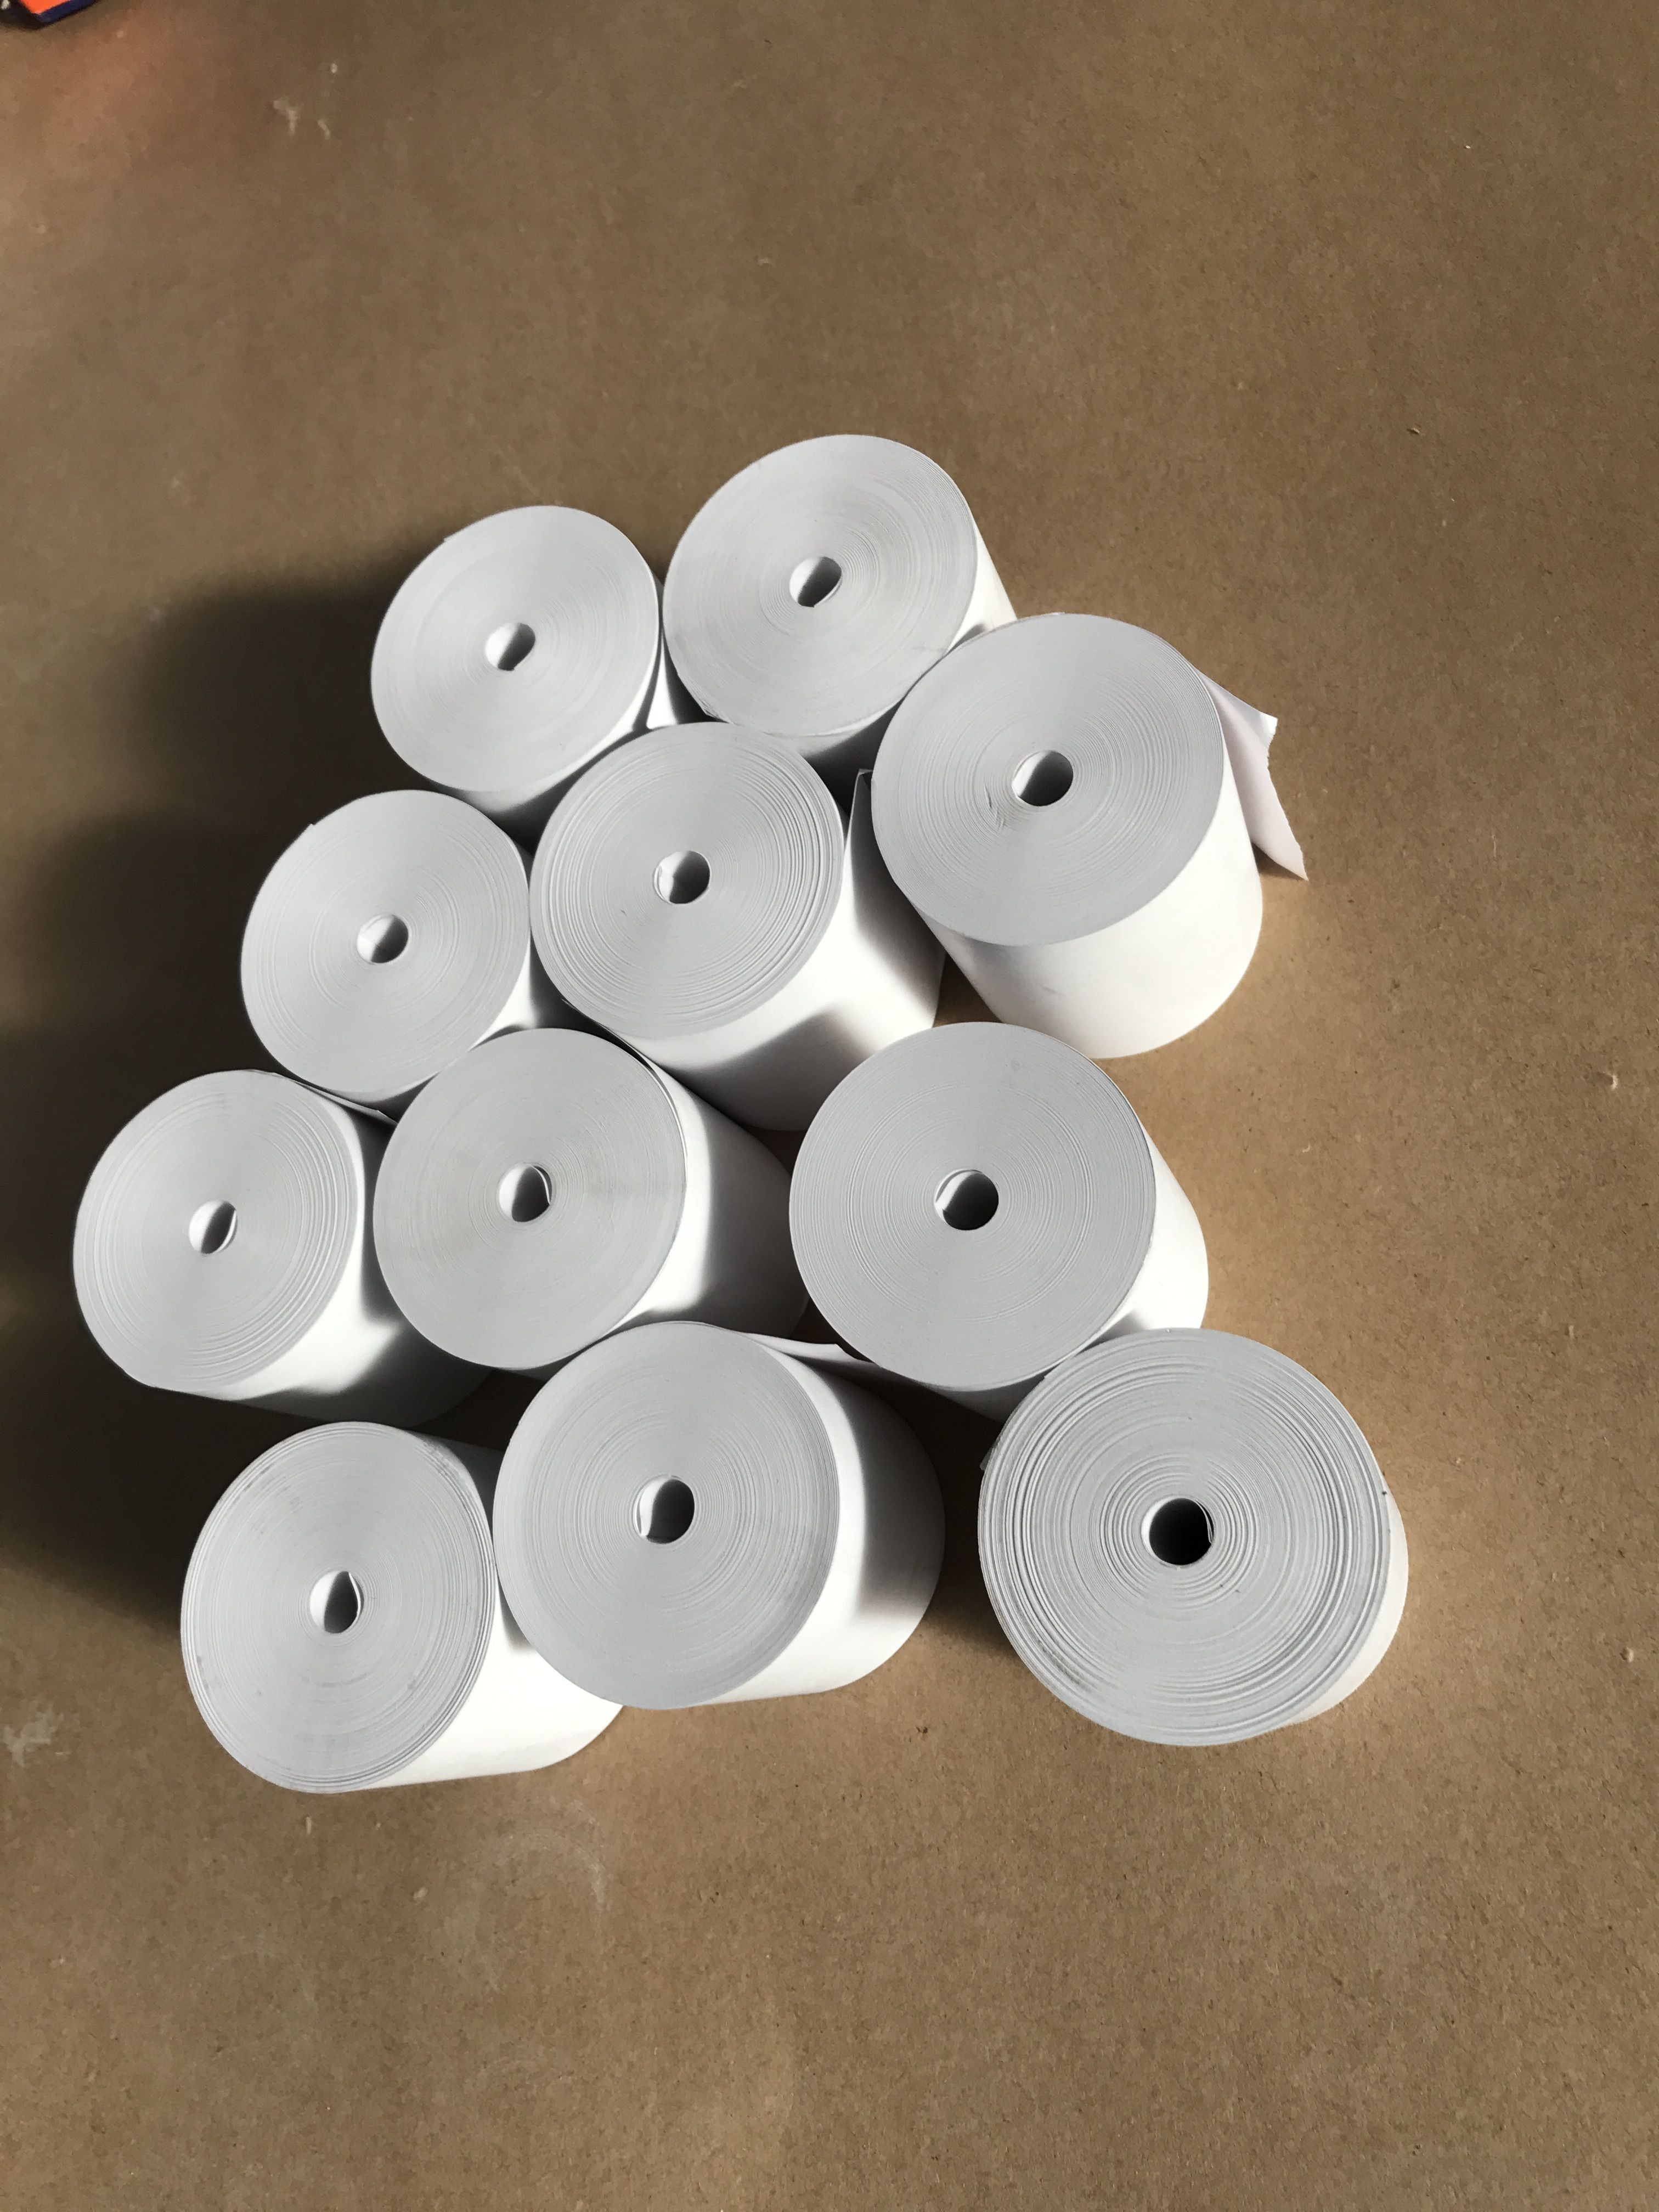 Coreless thermal paper rolls from Greatshine Paper | Coreless